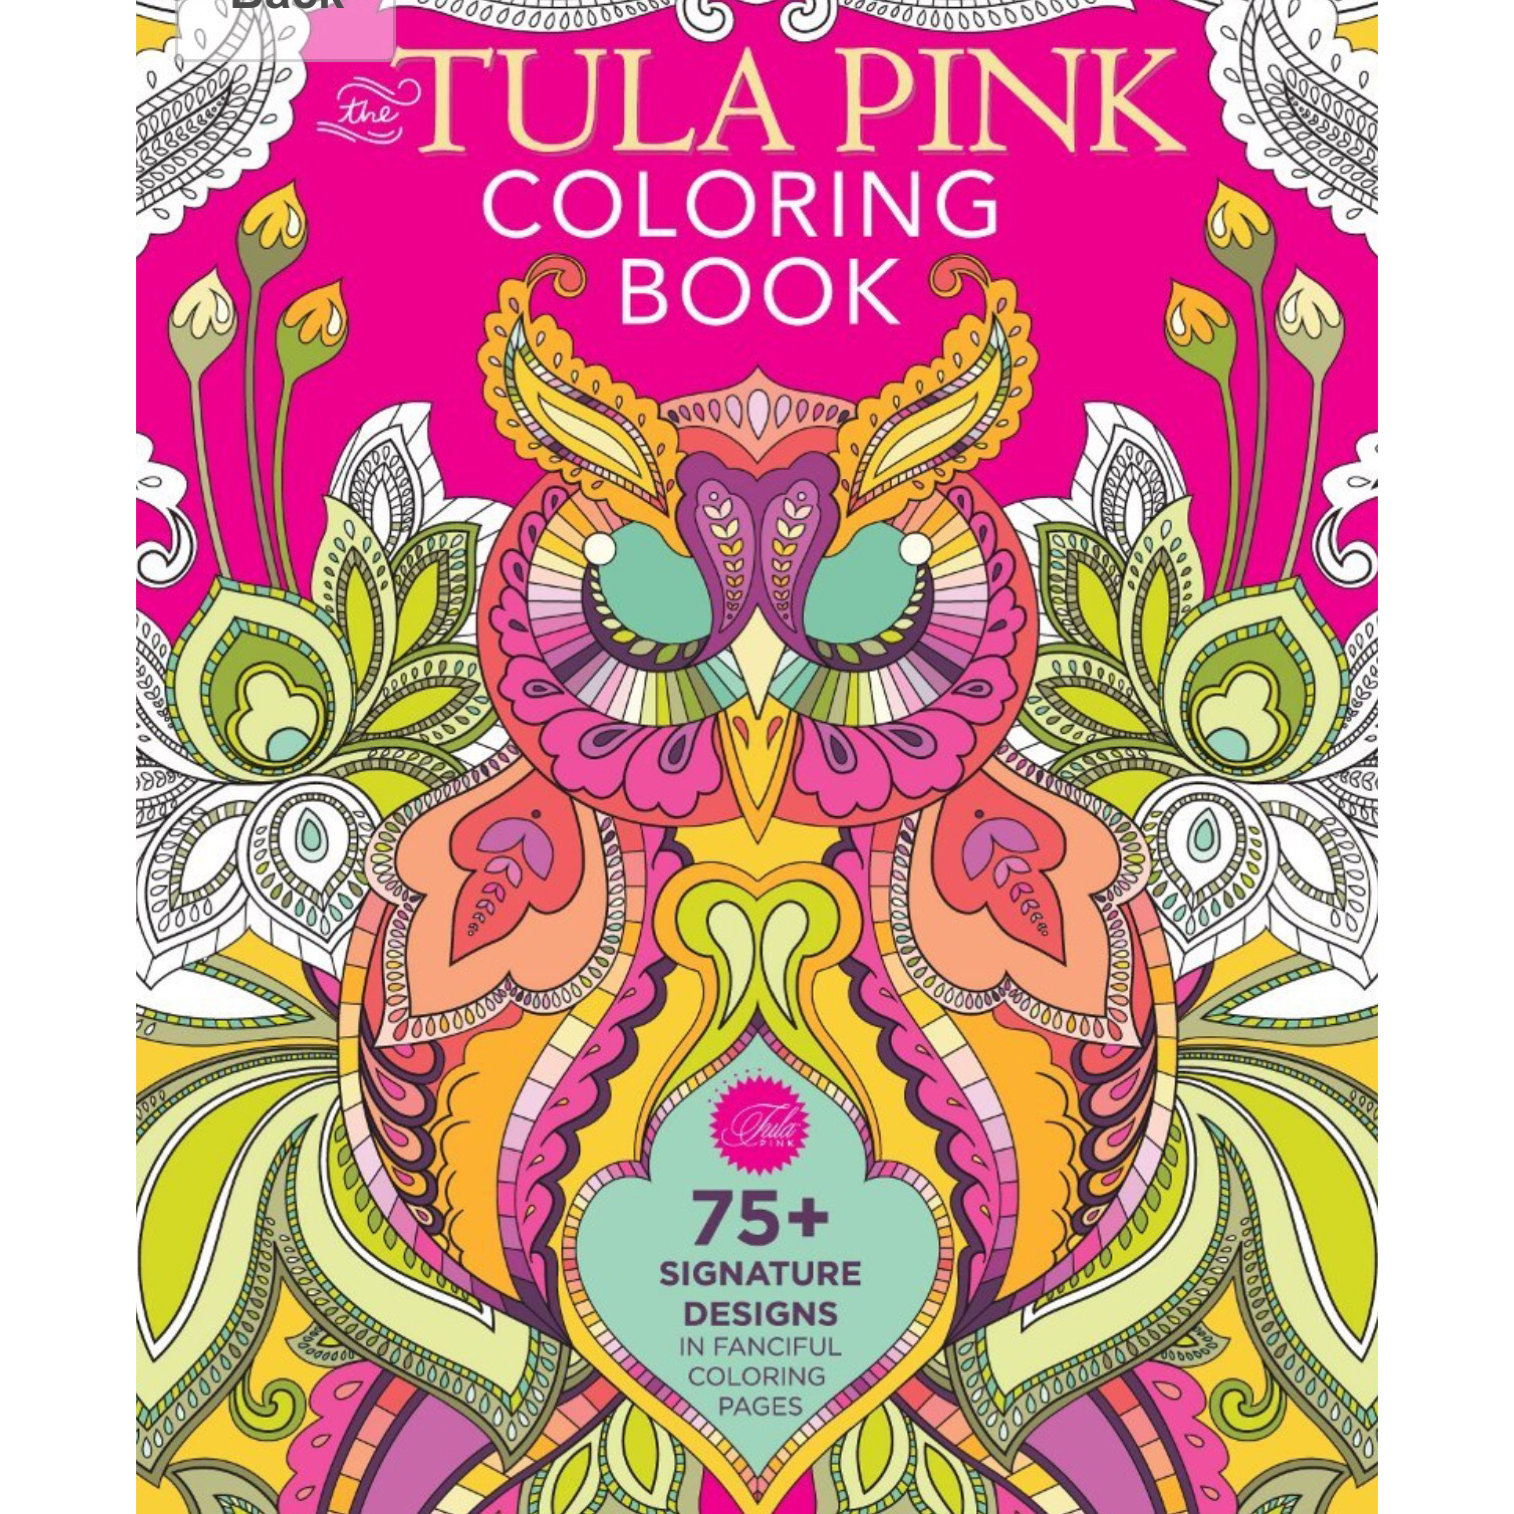 The tula pink coloring book -